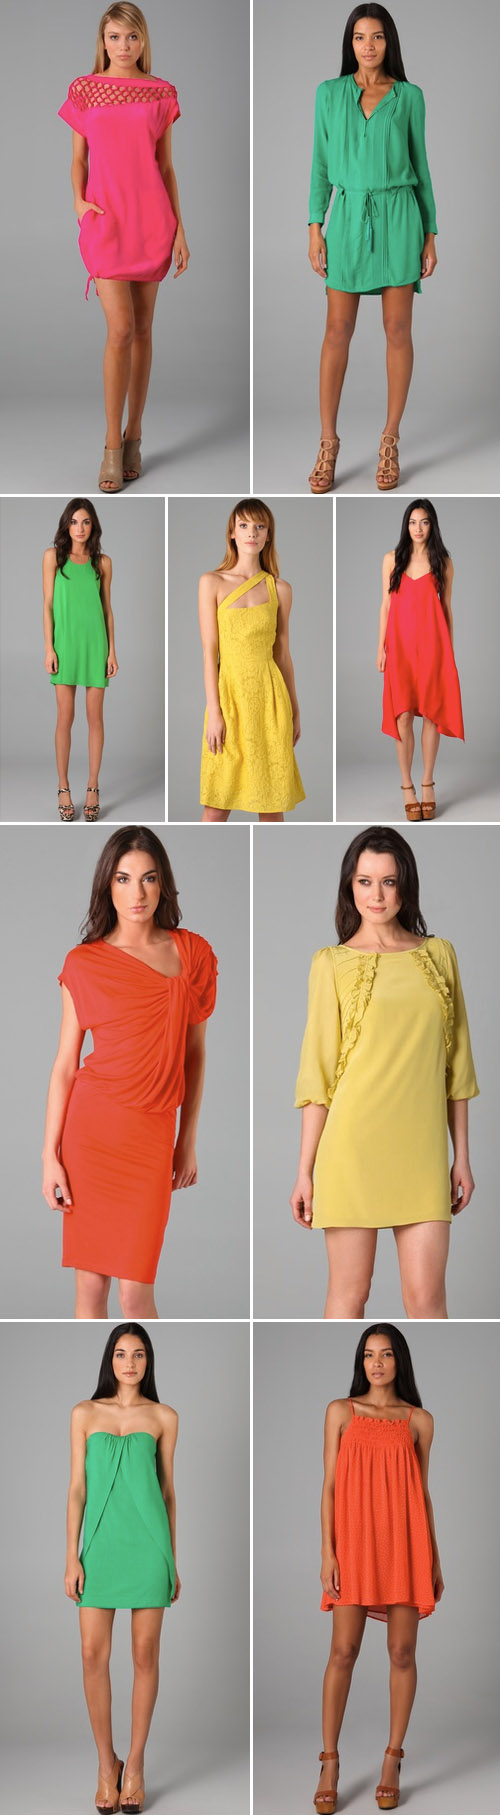 bright color spring and summer dresses from Shopbop.com